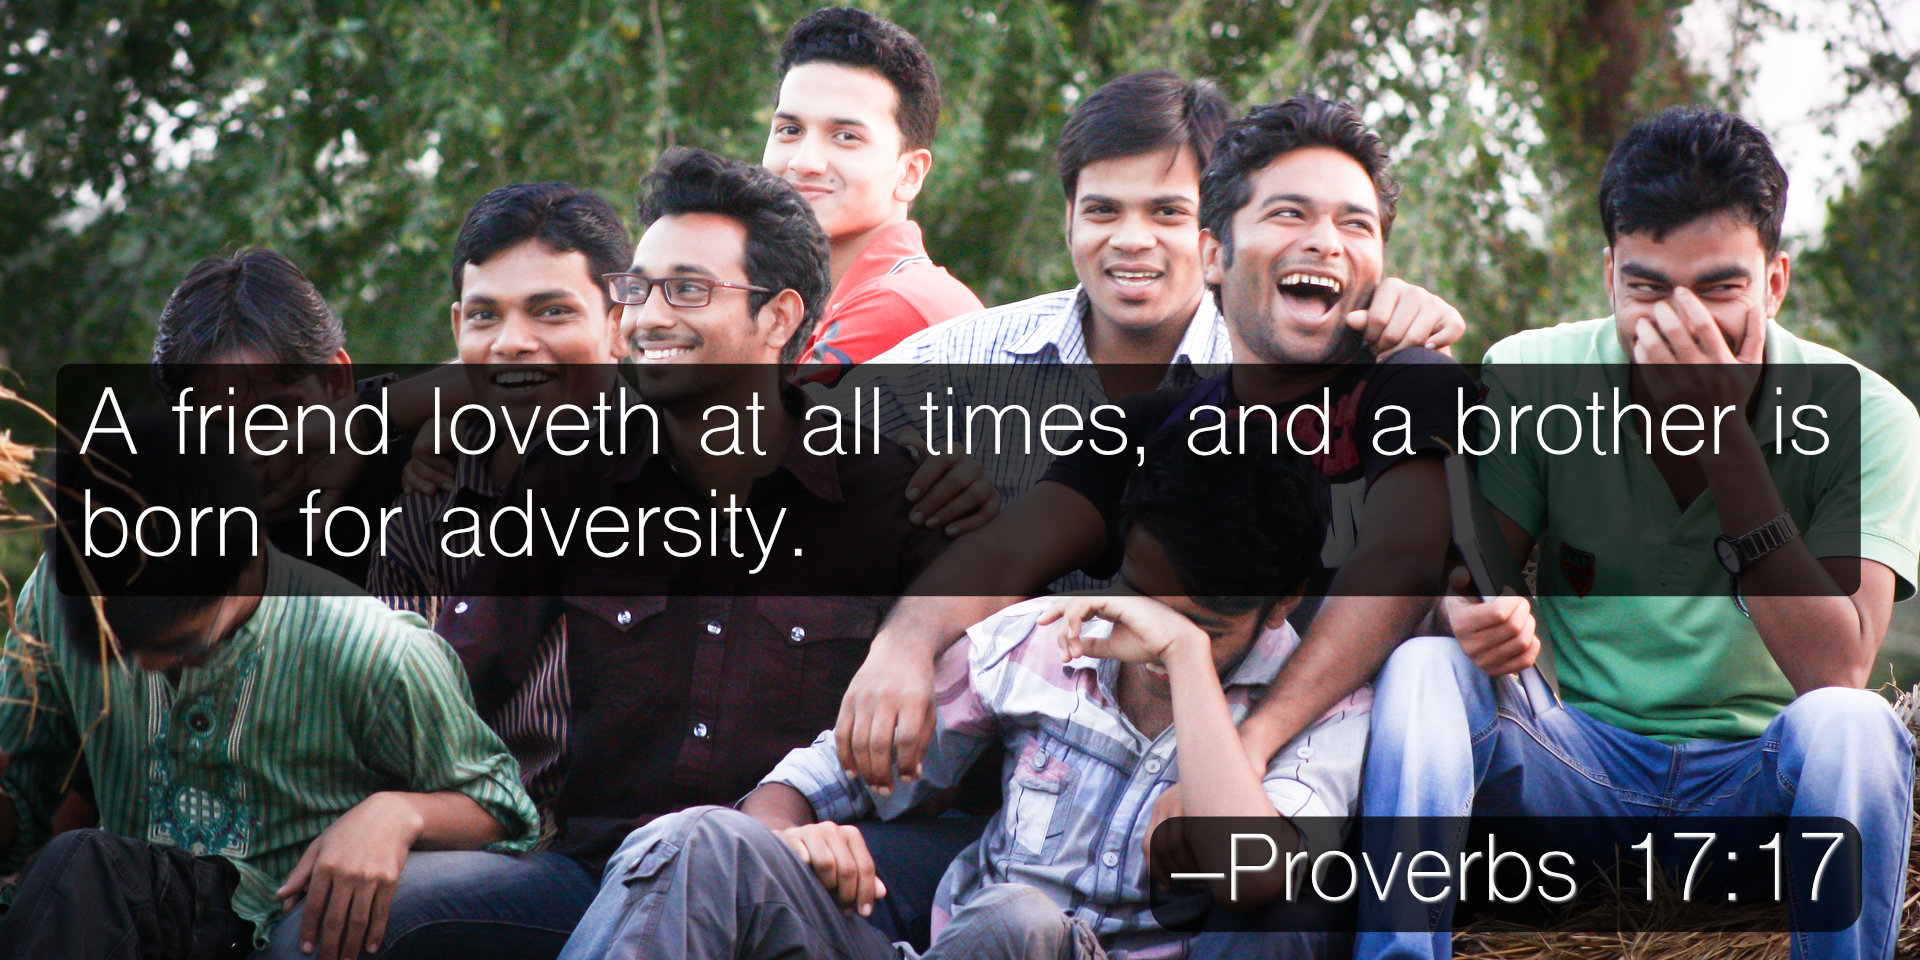 A friend loveth at all times, and a brother is born for adversity. –Proverbs 17:17